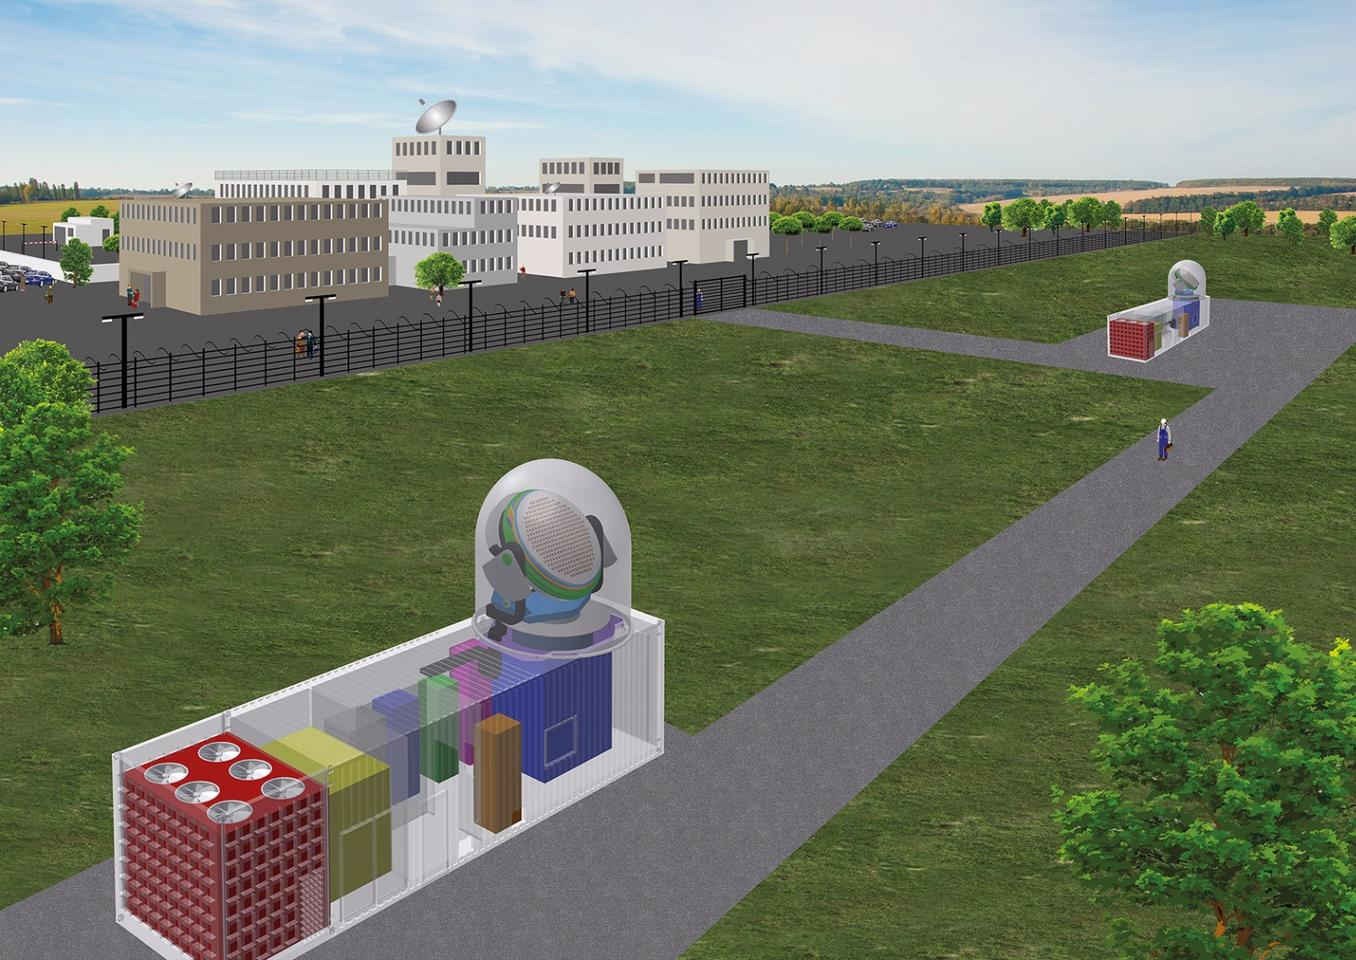 Due for completion in 2018, the GESTRA project is designed to monitor and track objects in low-Earth orbit